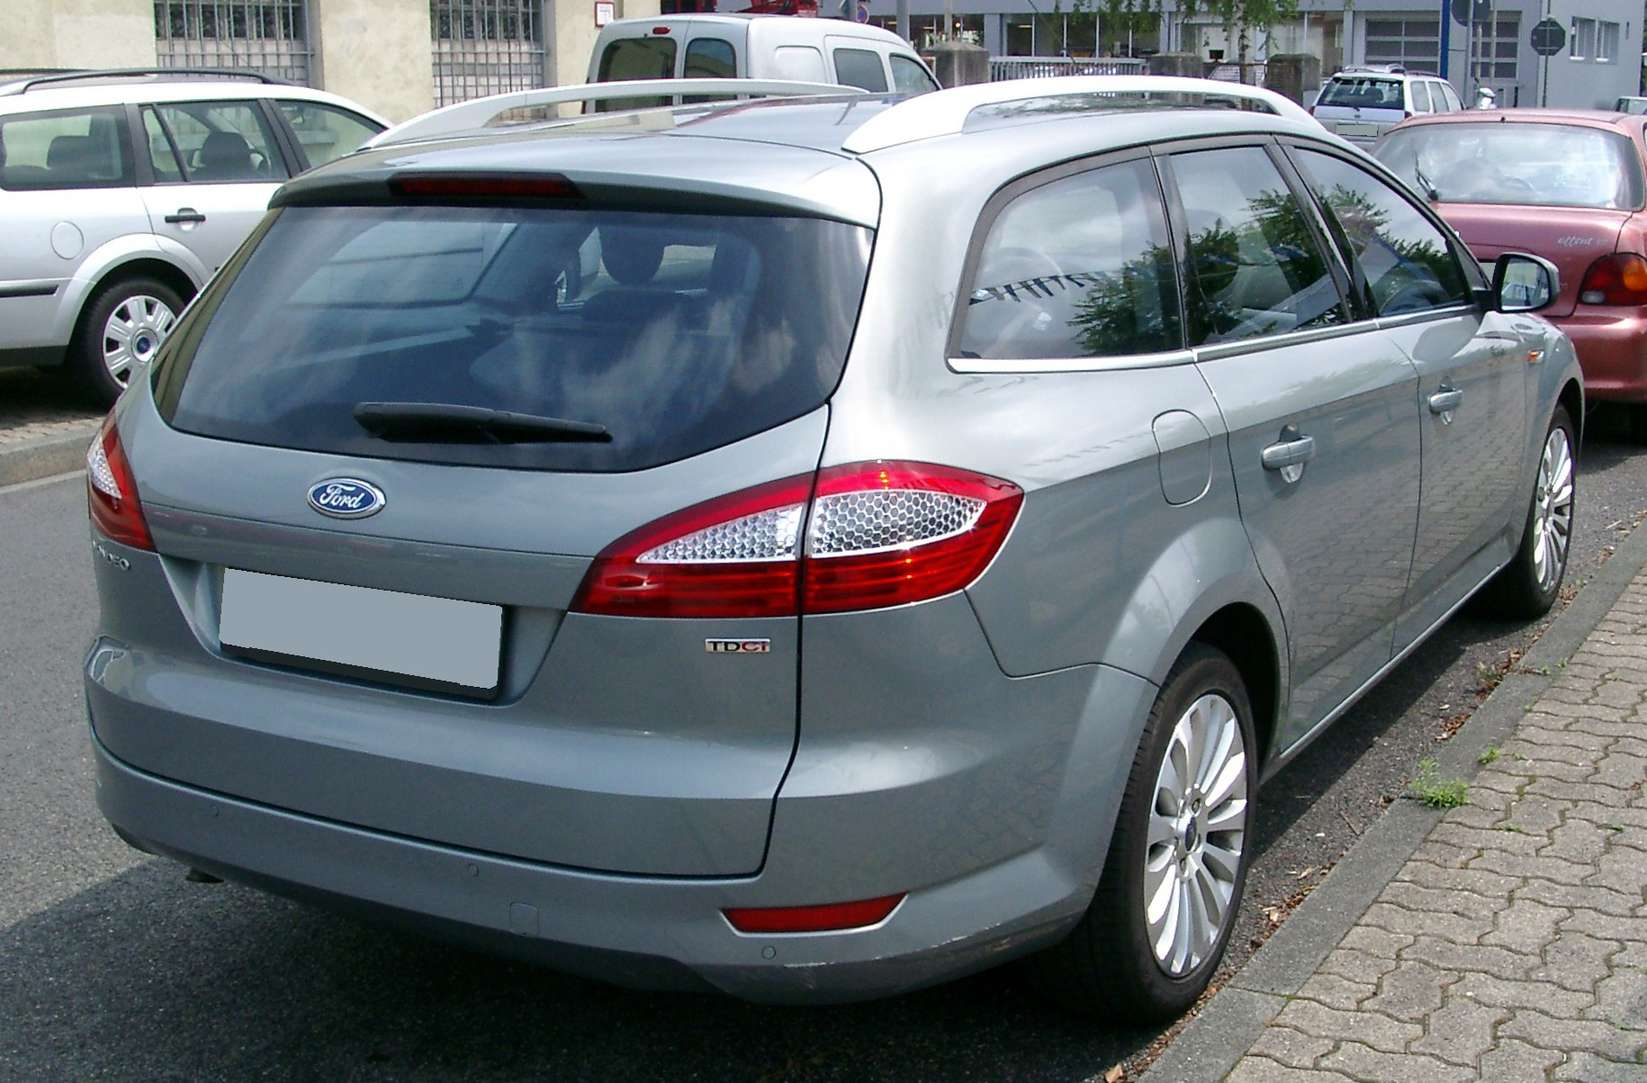 Ford Mondeo Turnier #8213768